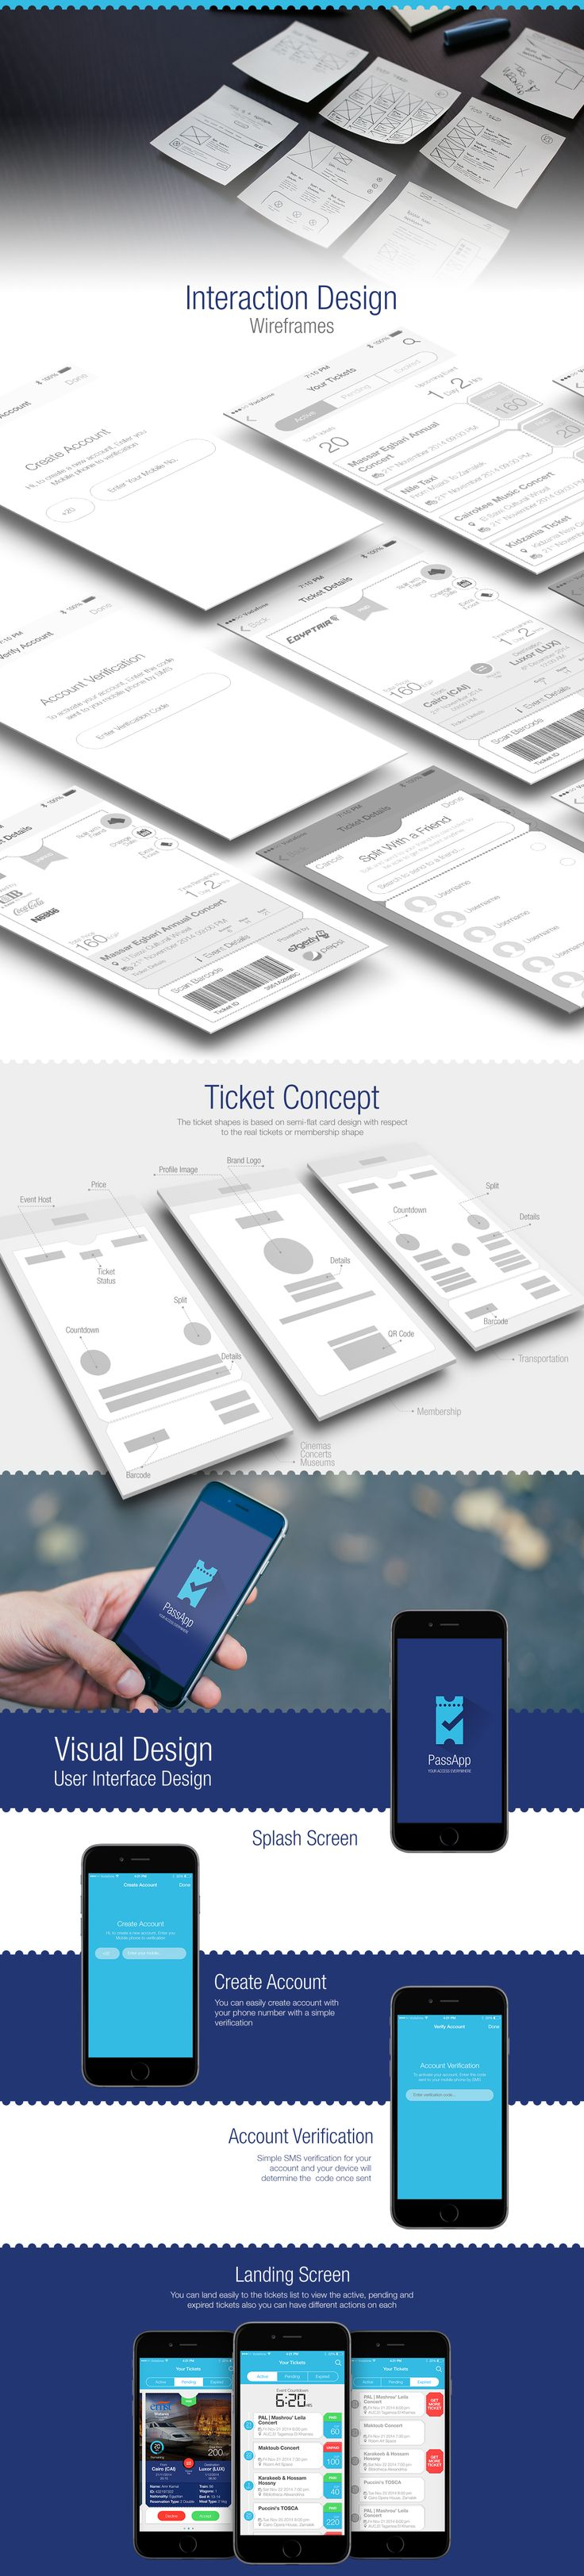 This is unofficial version, and won't be published (Rejected by Client)PassApp concept is converting the paper ticket to digitized ticket with simple experience enabling users to receive tickets on app, split it with friends and check-in at events. Simp…